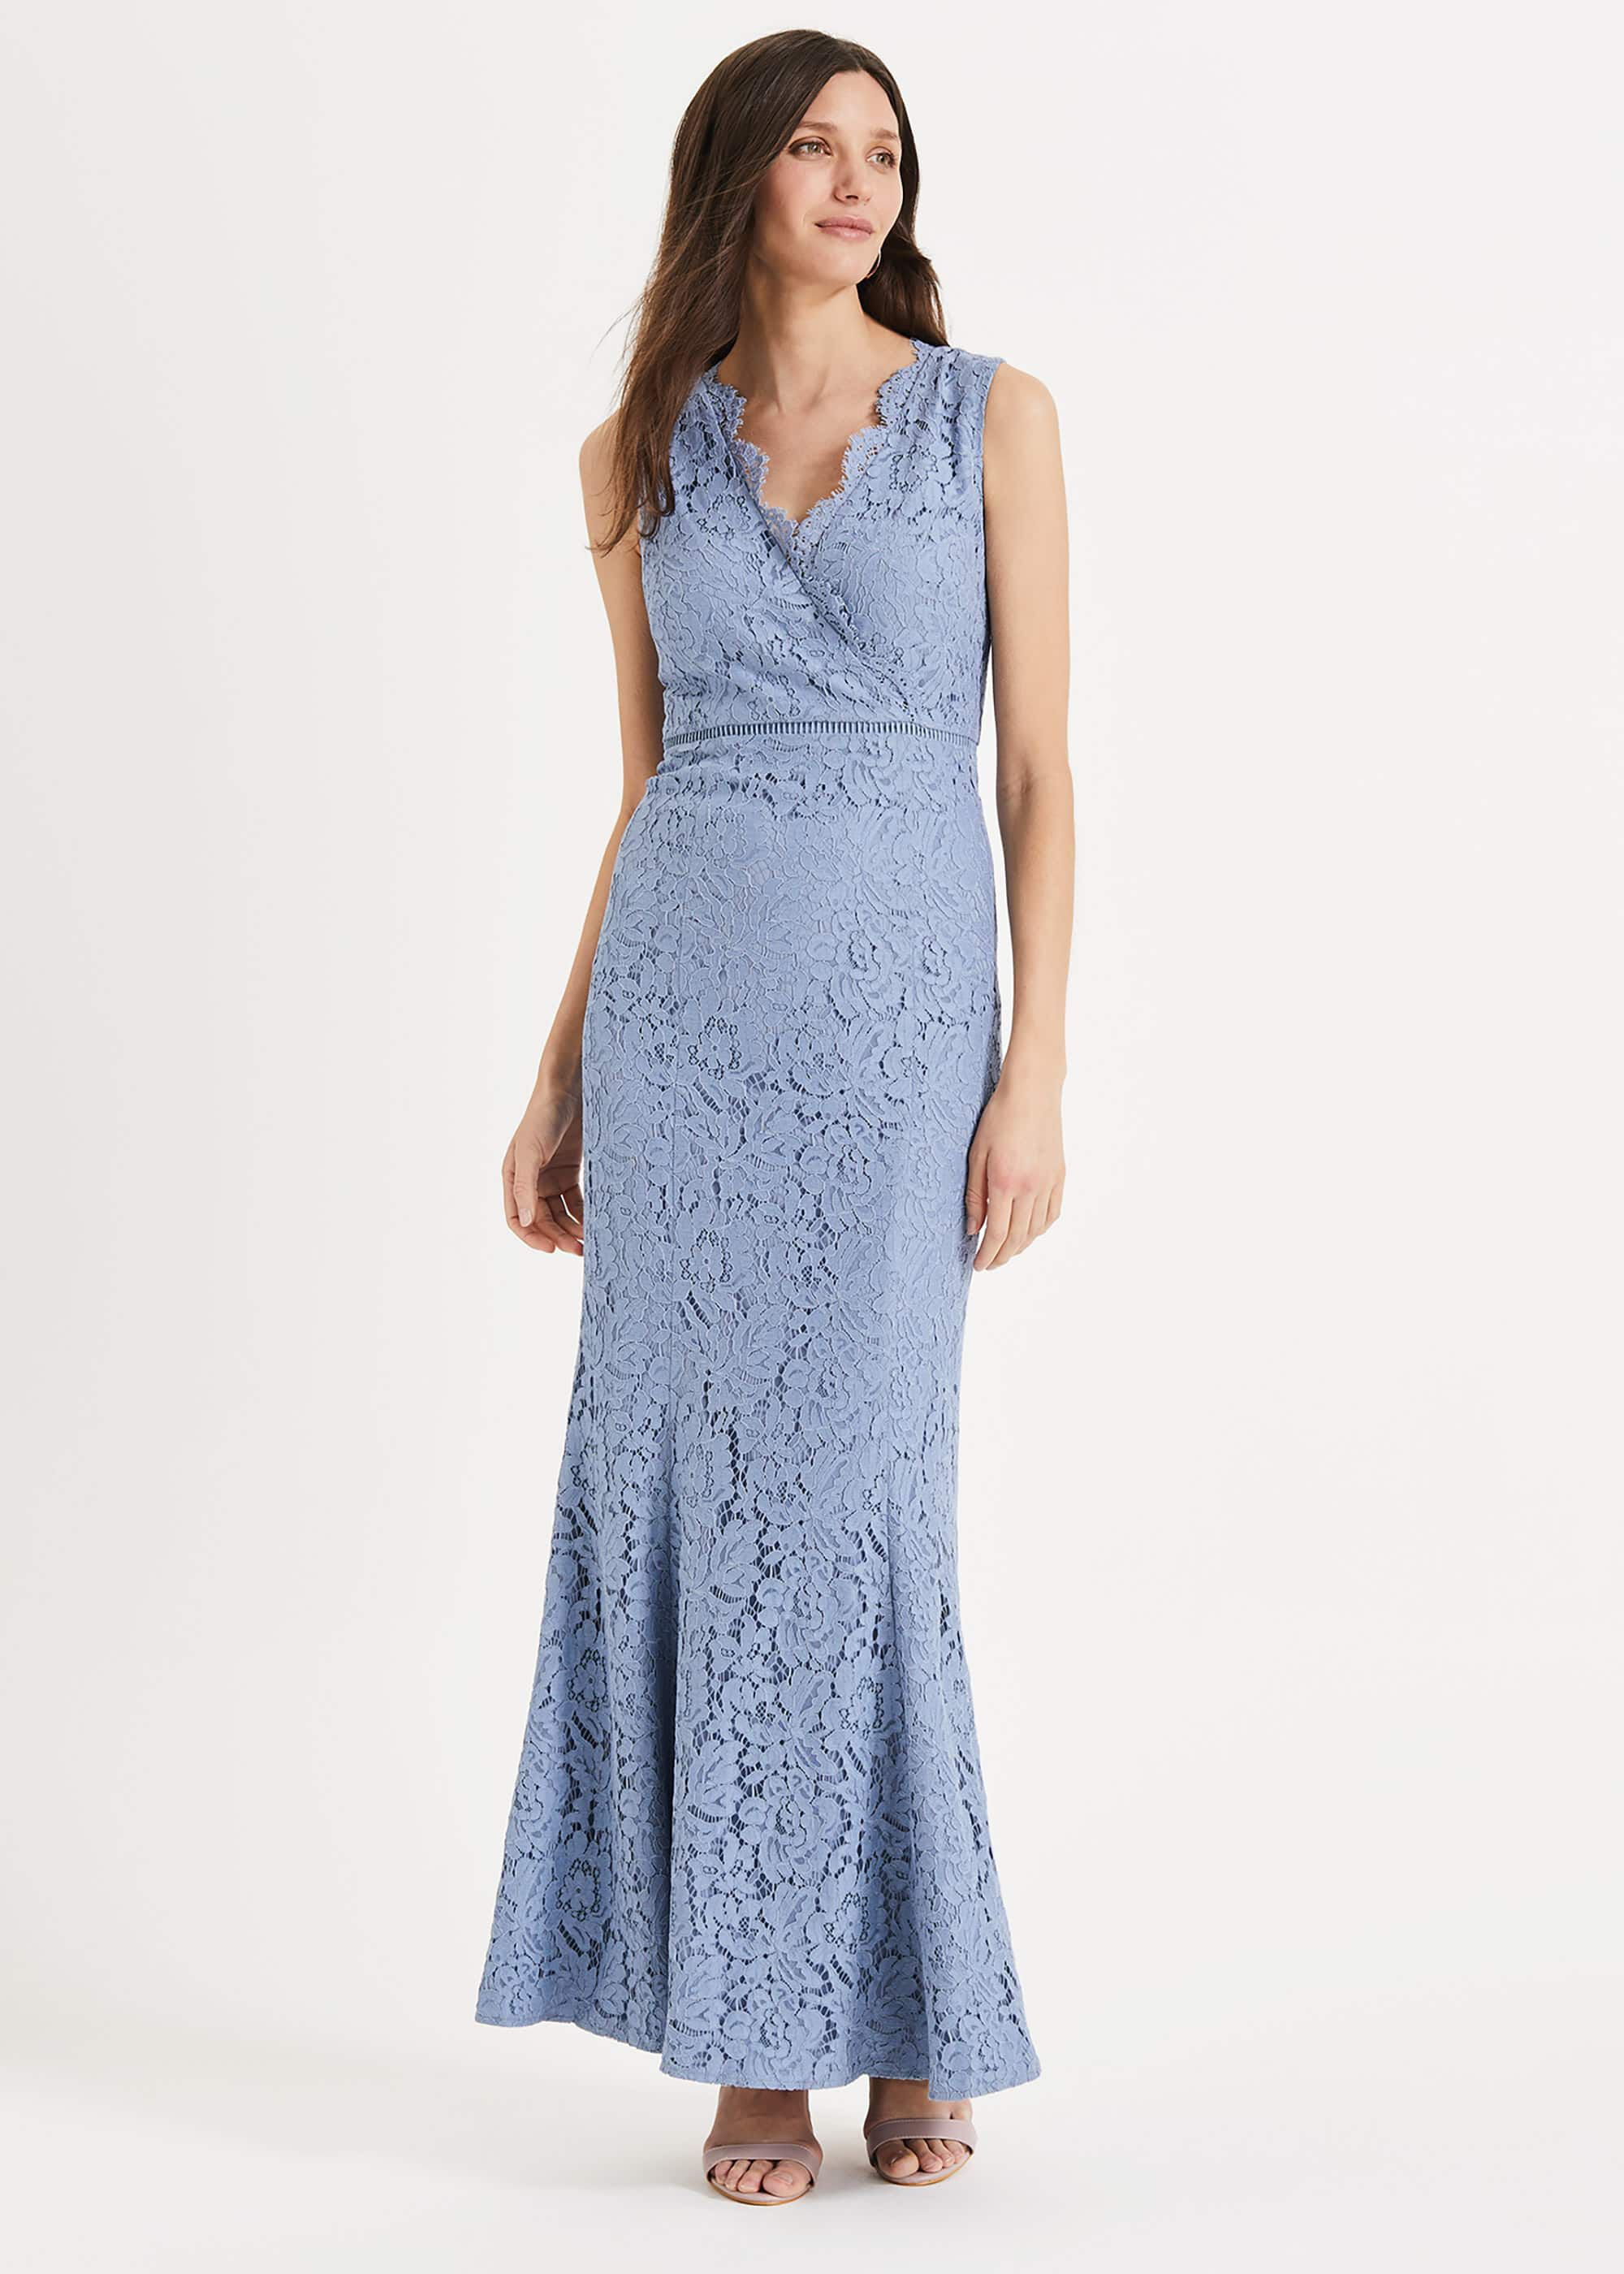 Phase Eight Paola Lace Fishtail Dress, Blue, Maxi